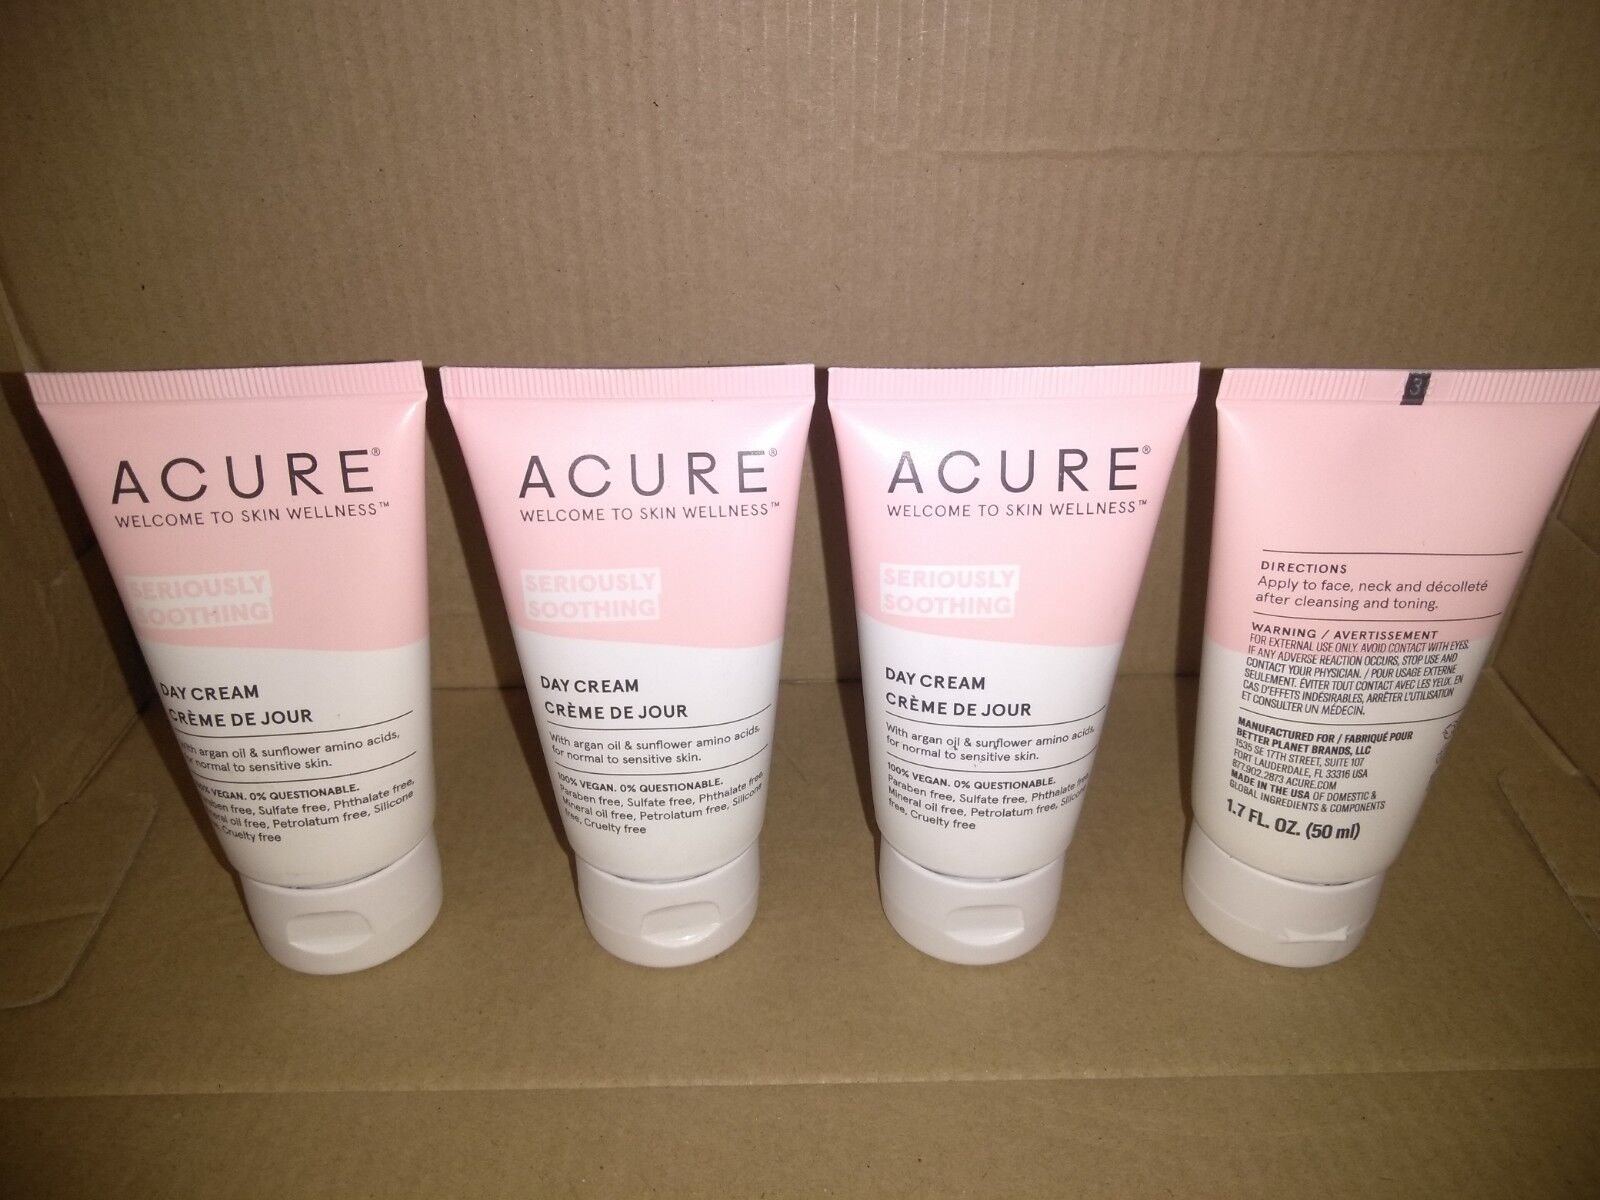 ACURE Sensitive Facial Cream, 1.7 fl oz